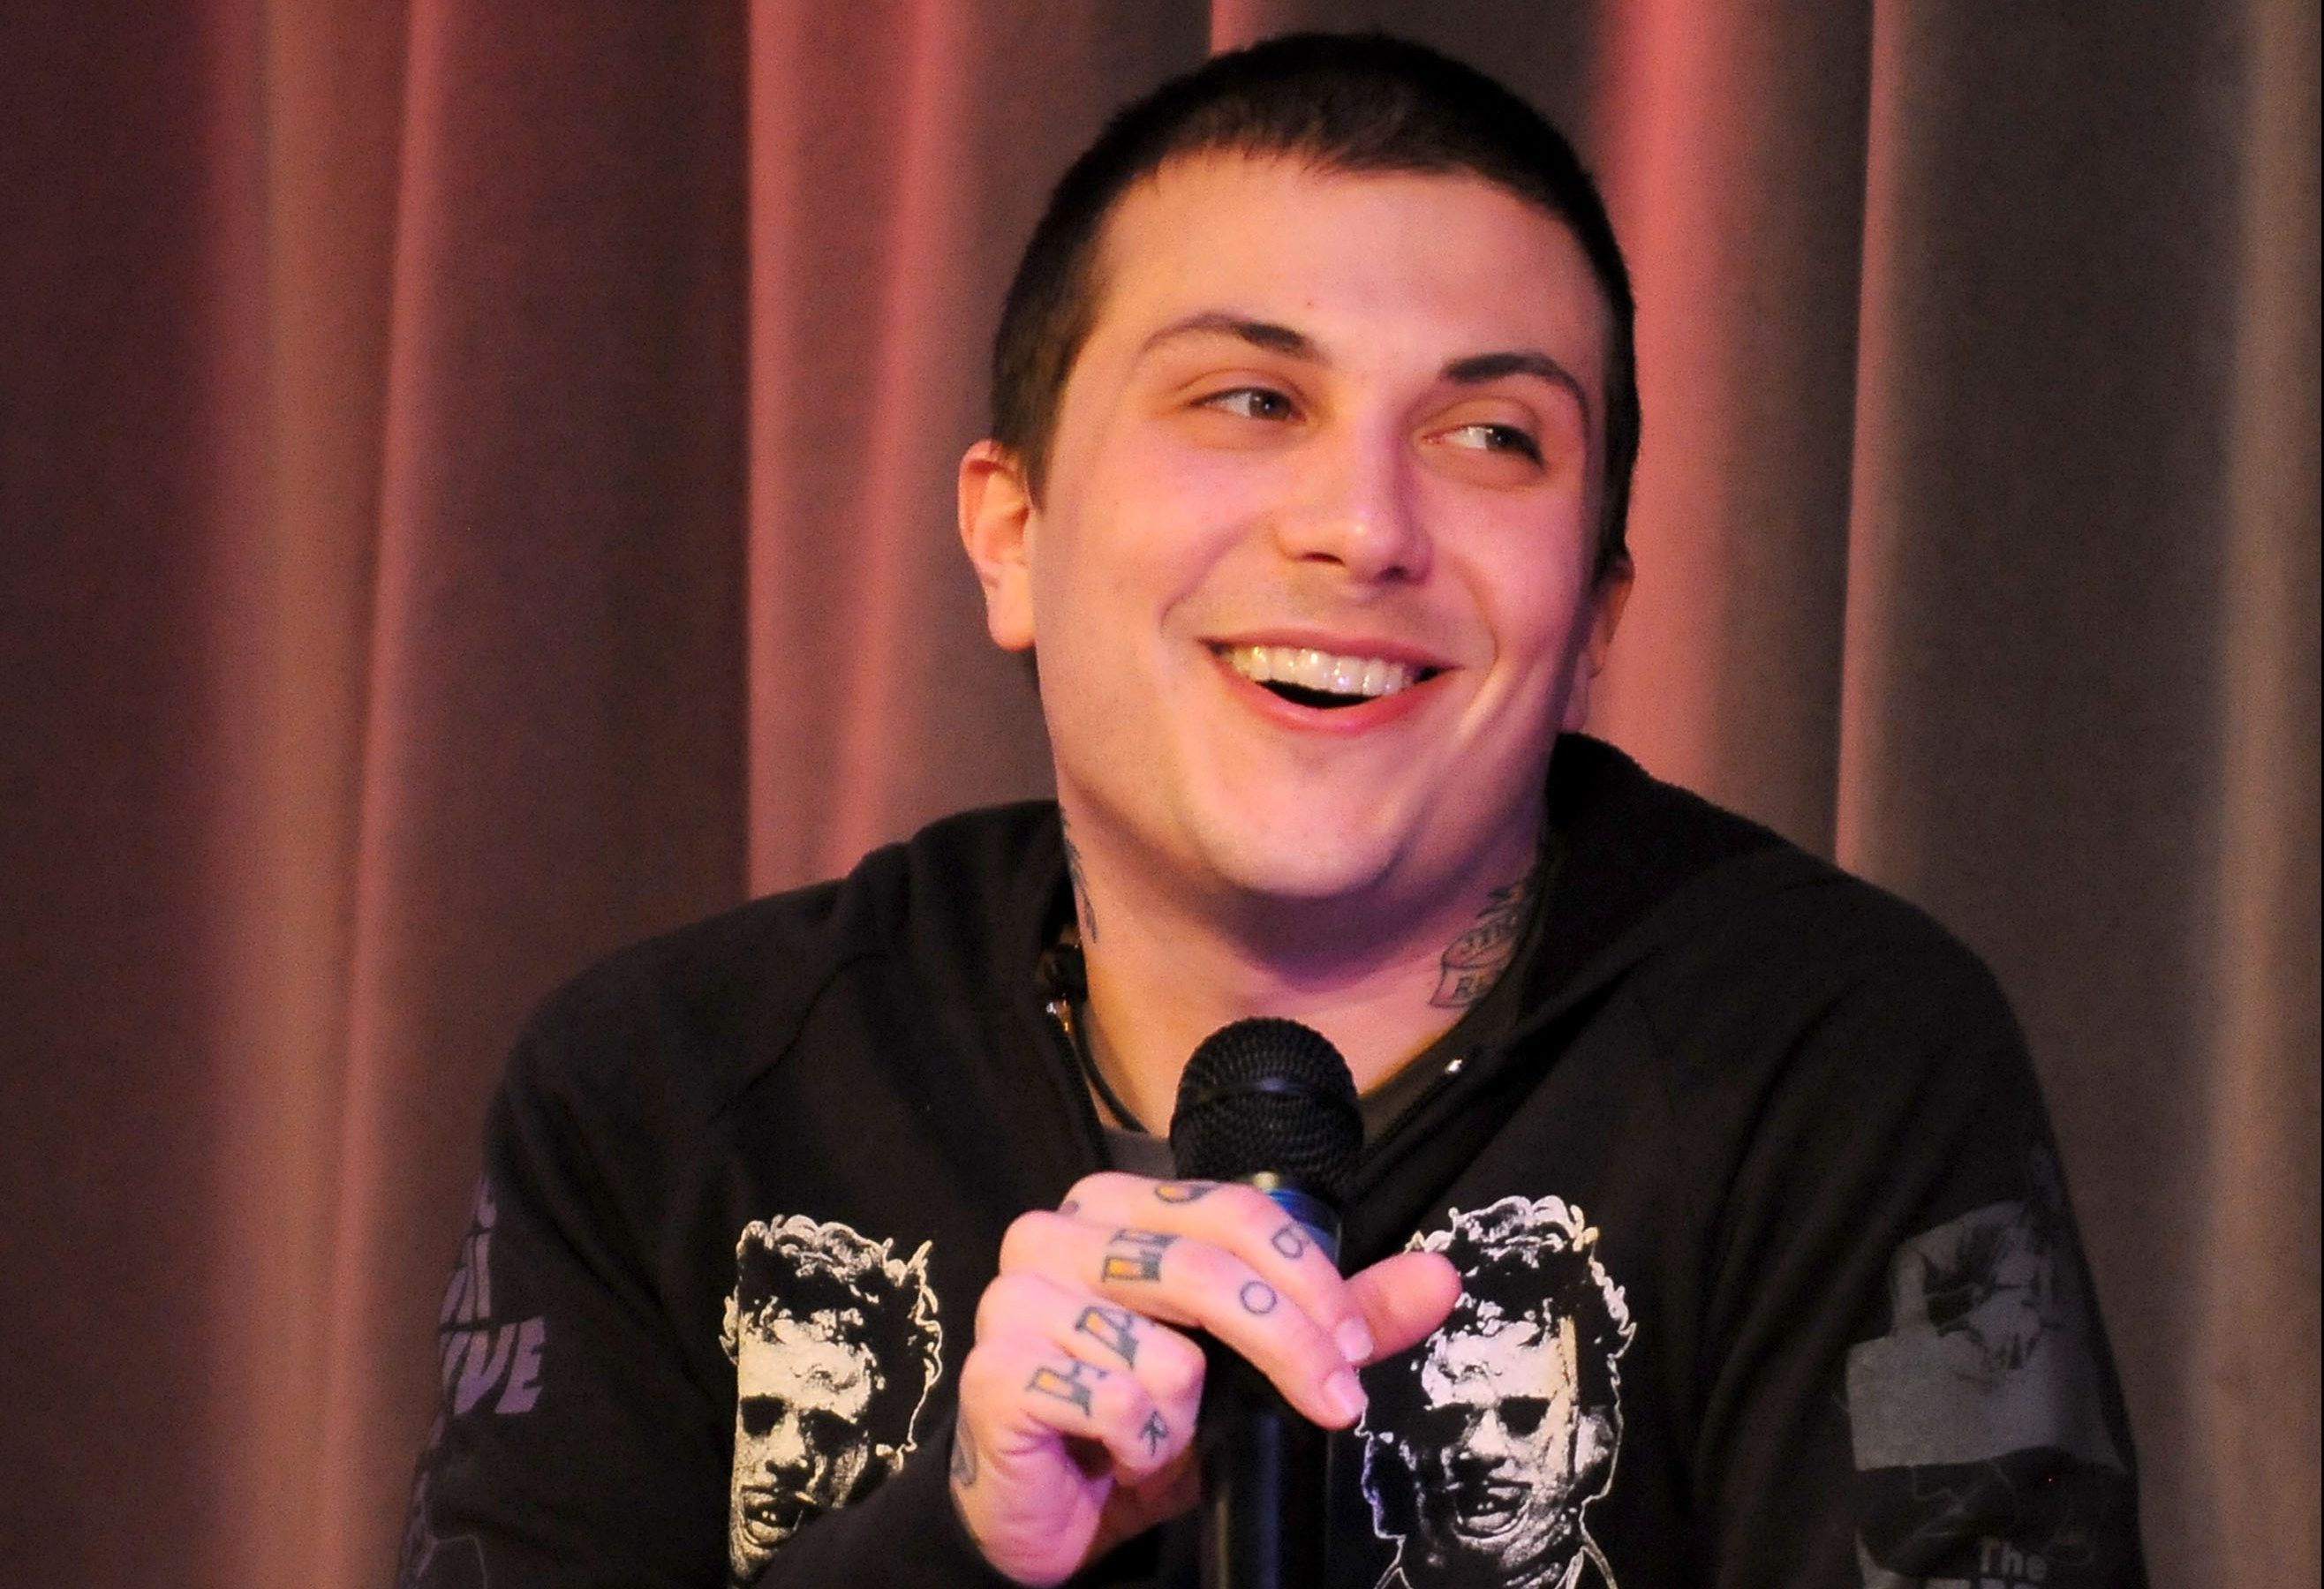 Frank Iero, formerly of My Chemical Romance, is ok following a traffic accident (Picture: Mark Sullivan/WireImage)